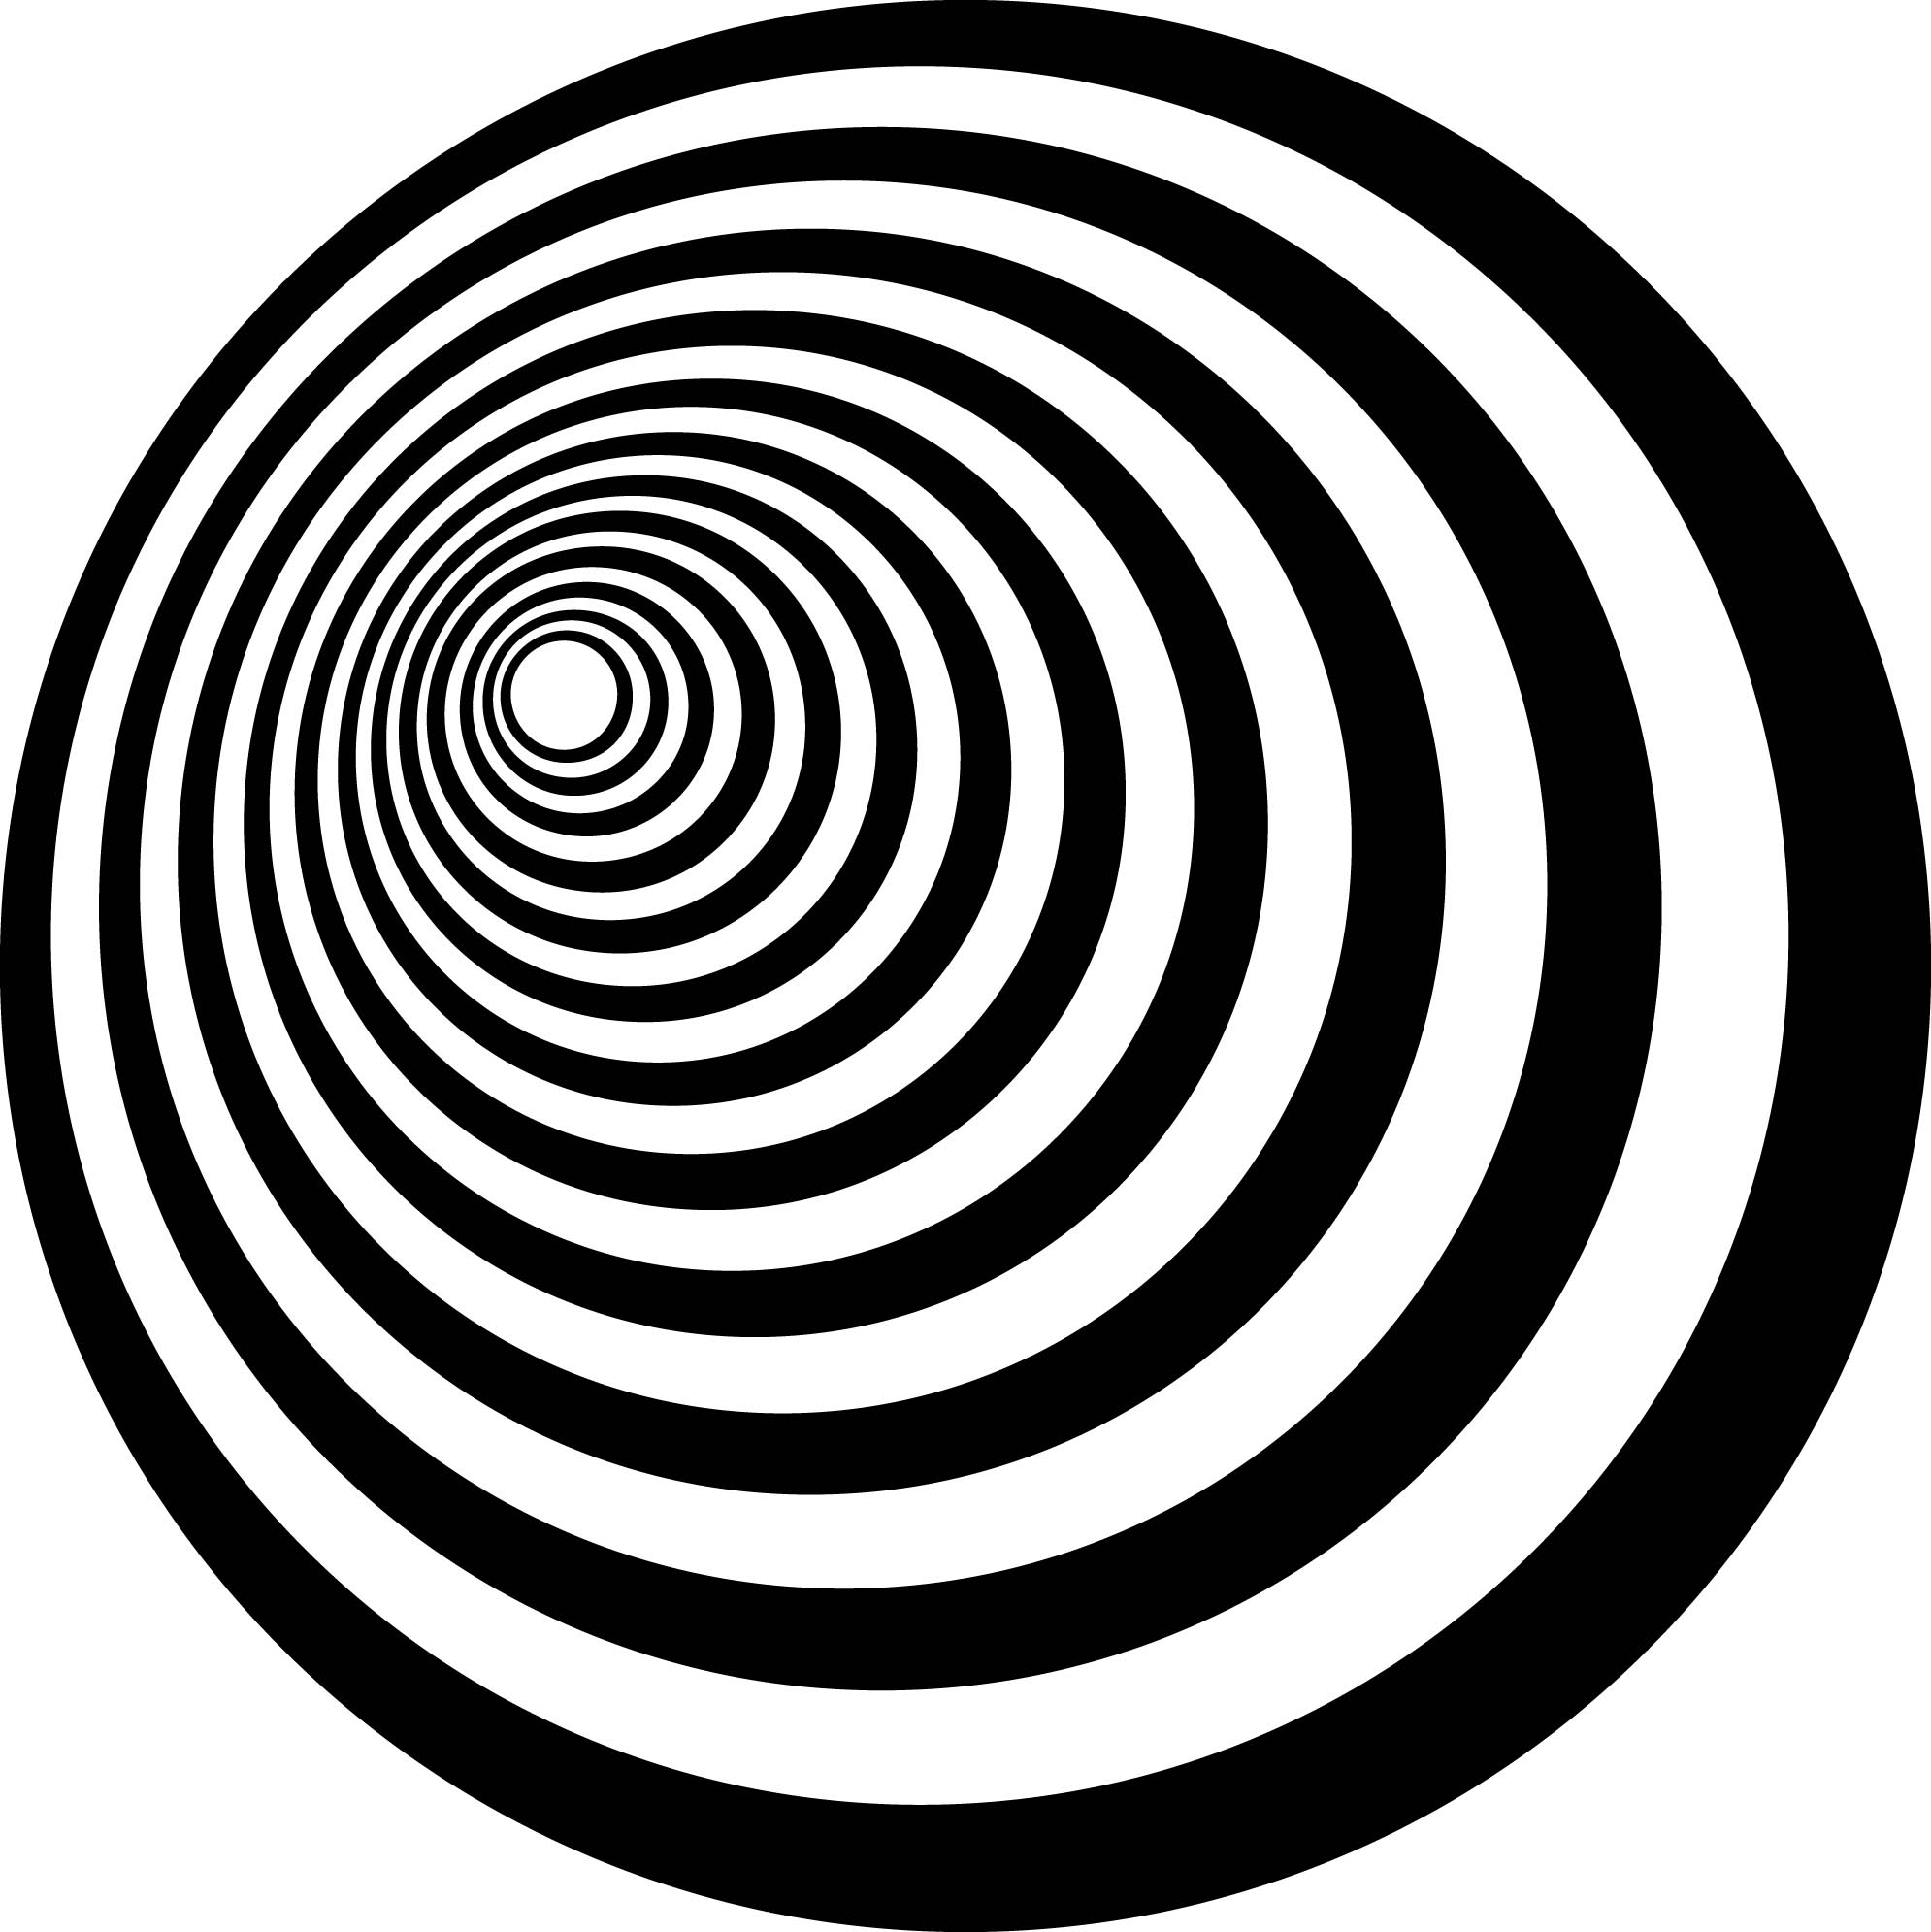 Screwtop clipart graphic black and white stock File:Screwtop spiral.jpg - Wikipedia, the free encyclopedia ... graphic black and white stock